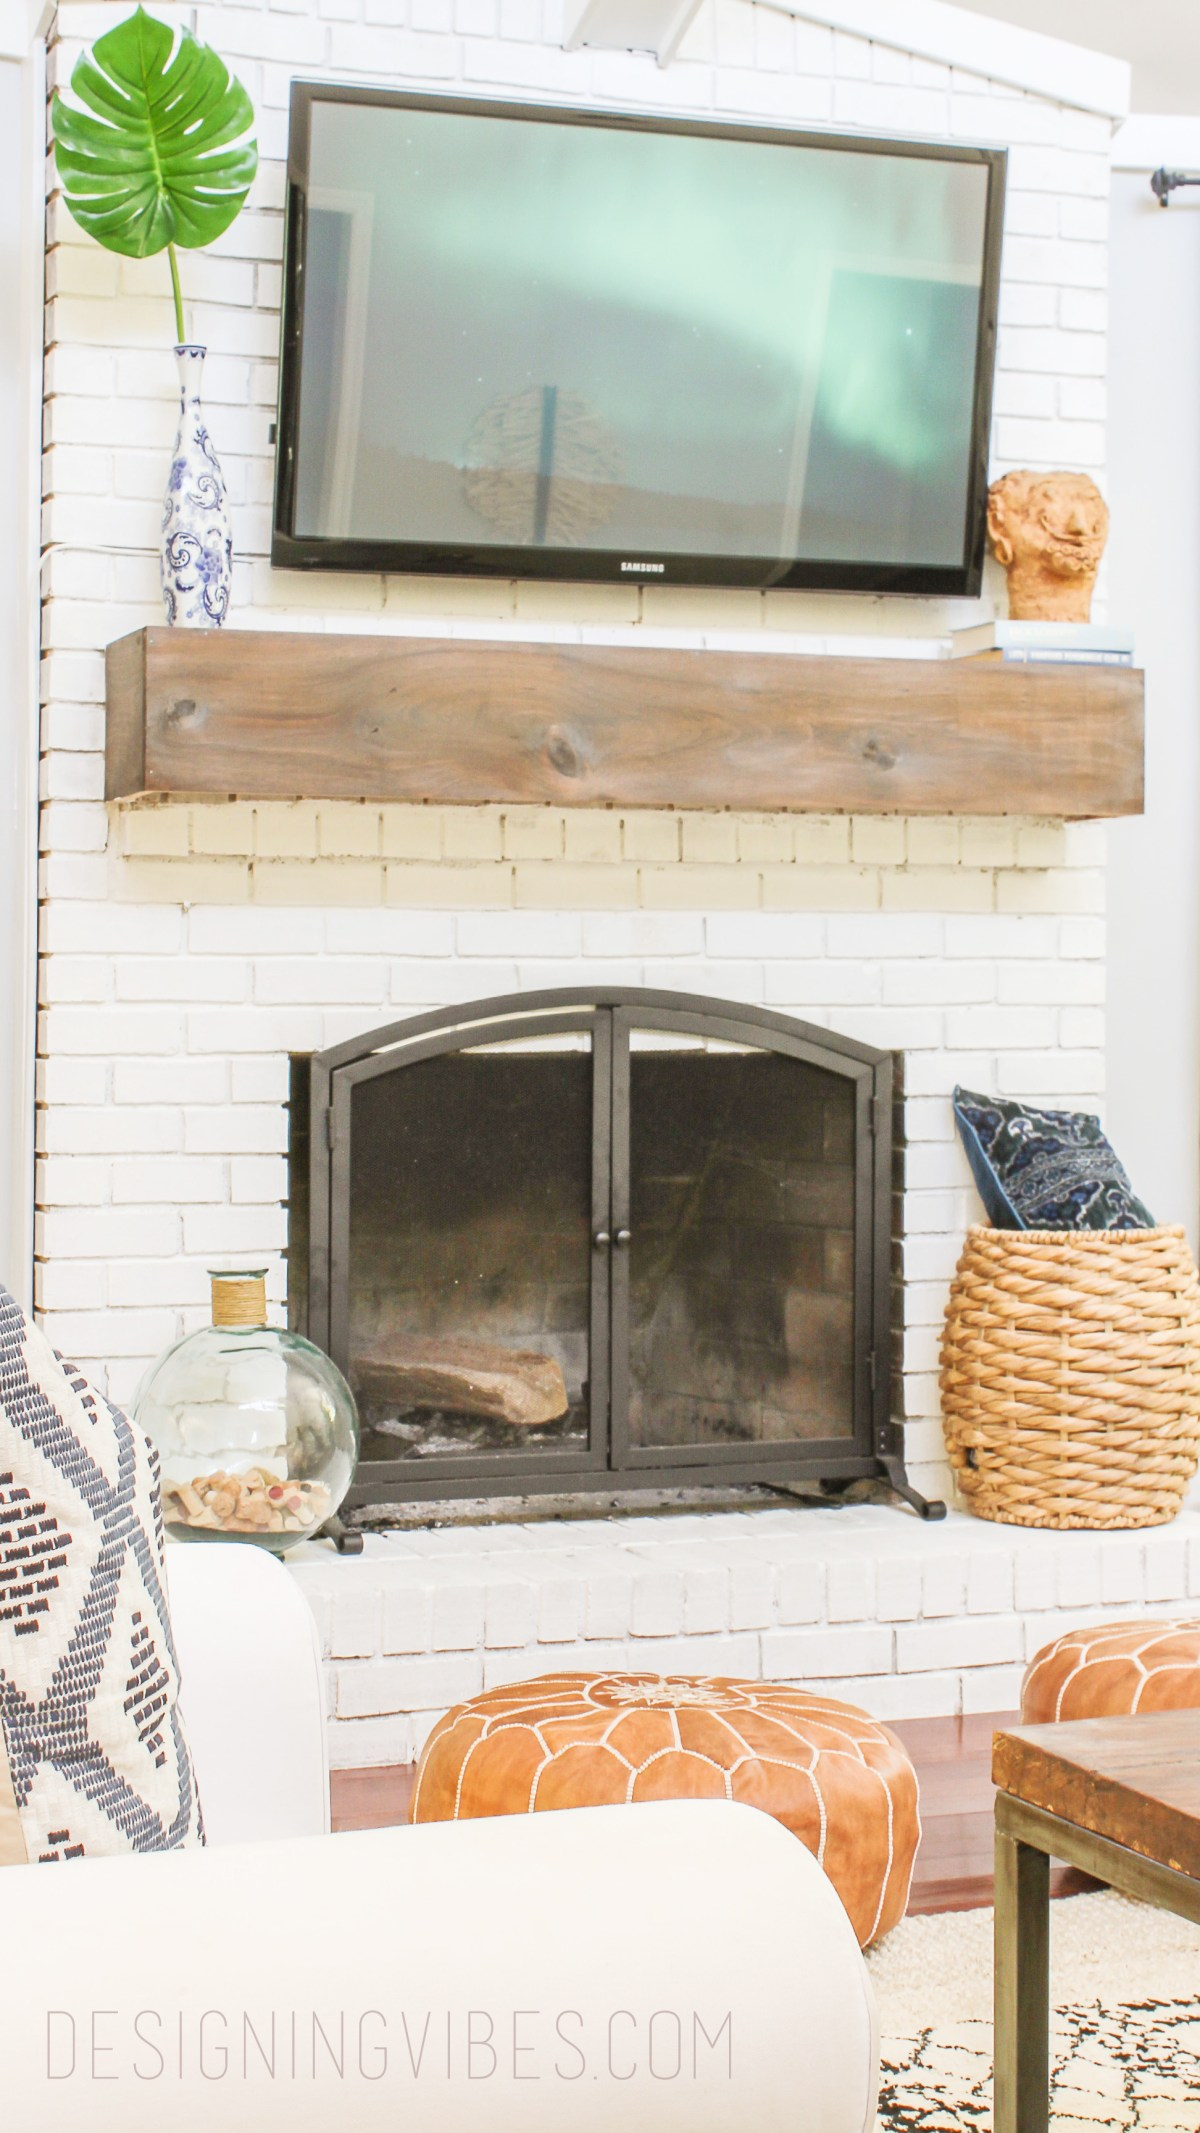 My Painted Brick Fireplace 3 Years Later A Cautionary Tale